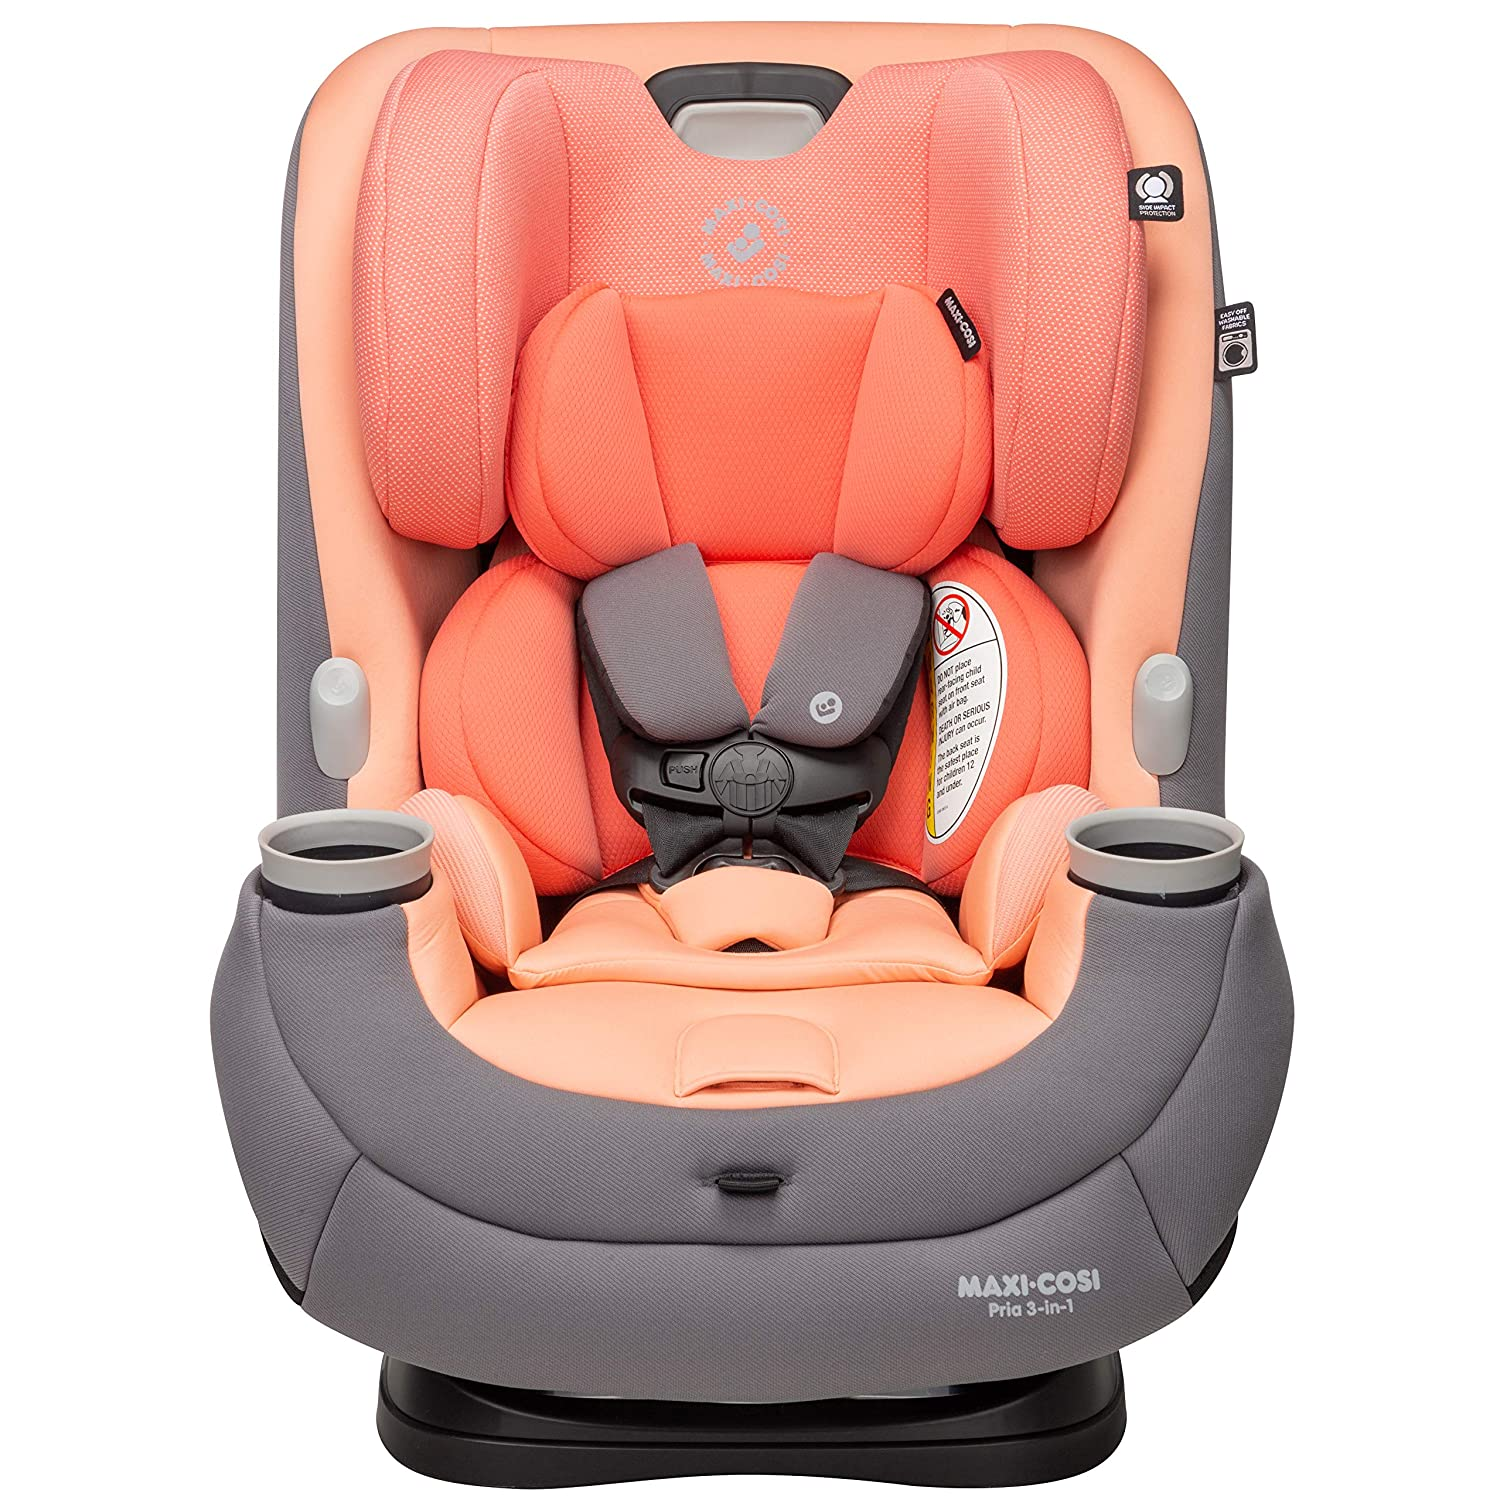 Maxi-Cosi Pria 3-in-1 Convertible Car Seat, Peach Amber, One Size